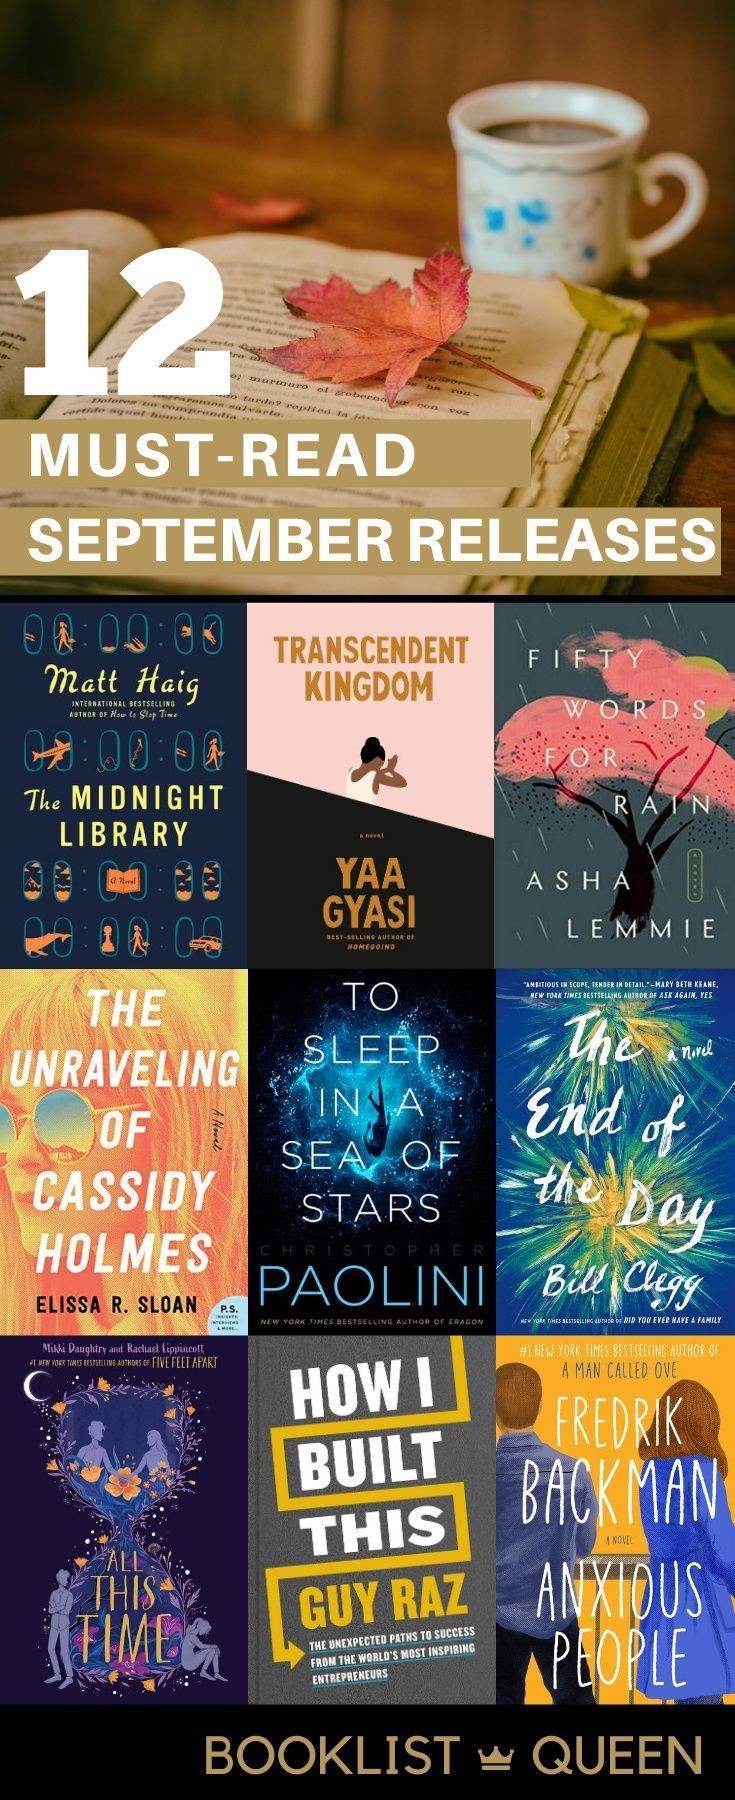 Best Halloween Book Releases 2020 September 2020 Book Releases To Read & Skip in 2020 | Book release